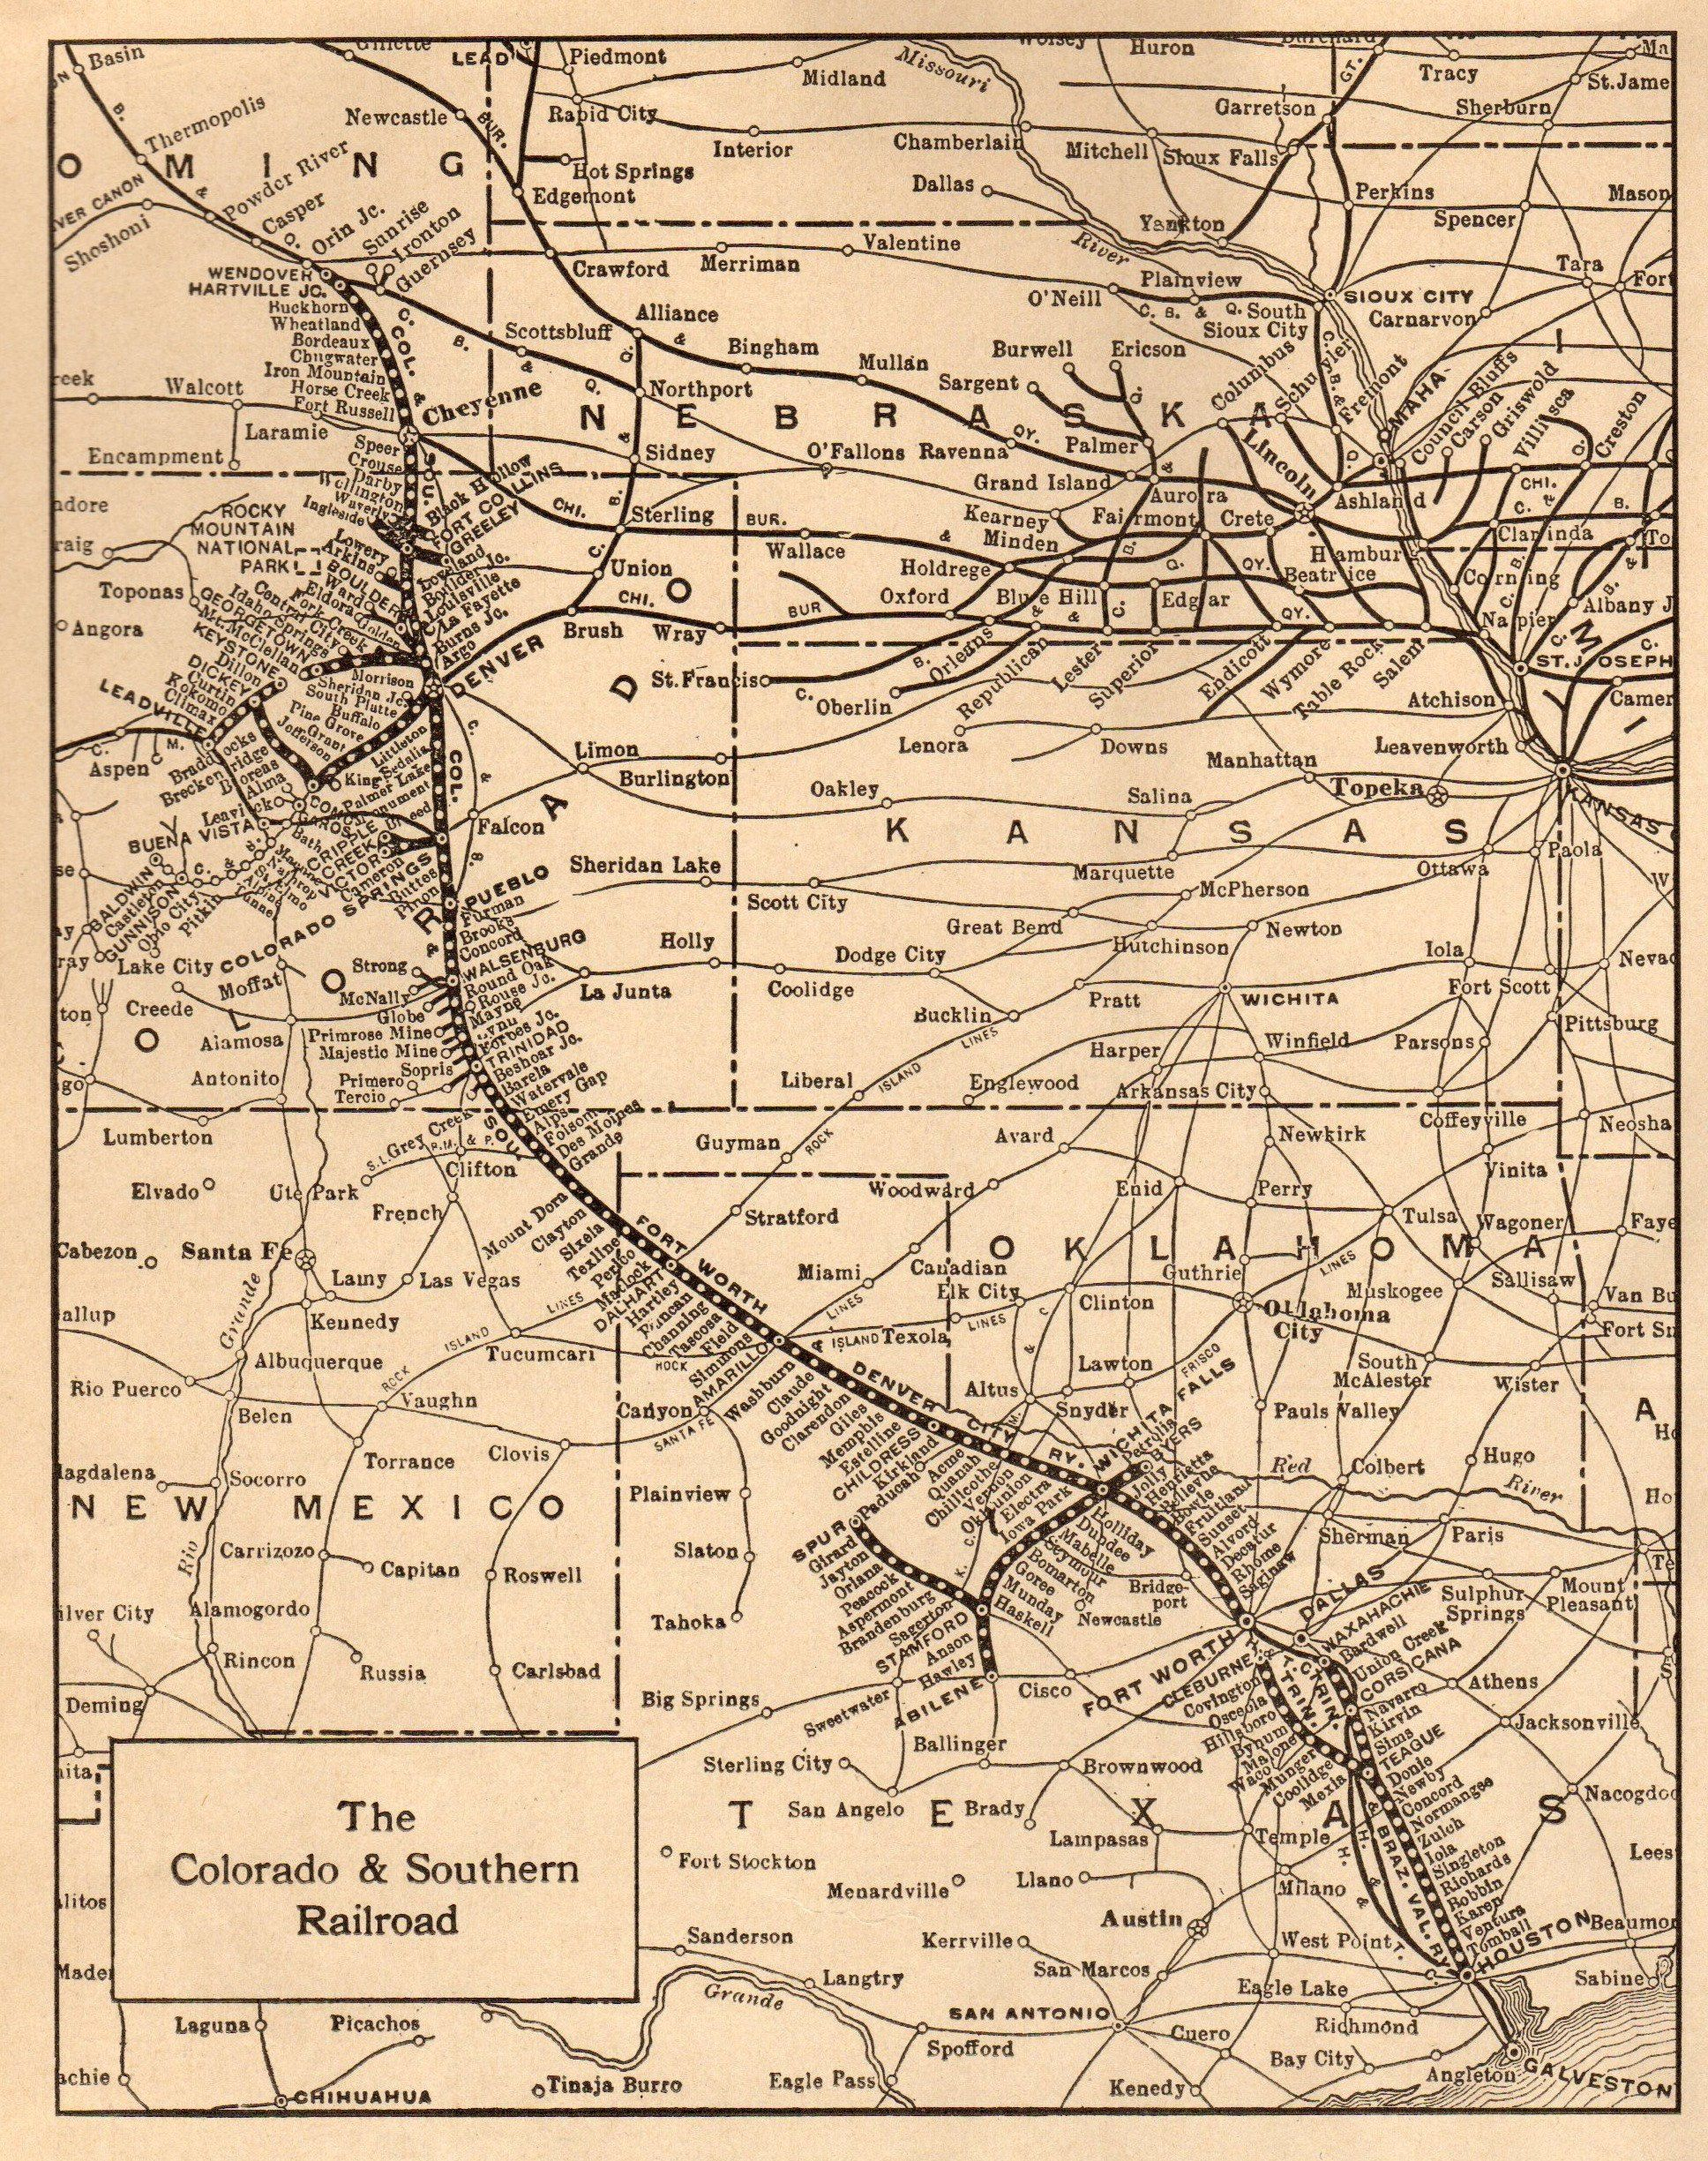 1922 Antique Colorado Southern Railroad Map Antique 1920s Railway Map Black And White Gallery Wall Art 6736 By Colorado Map Art Gallery Wall Colorado Railroad